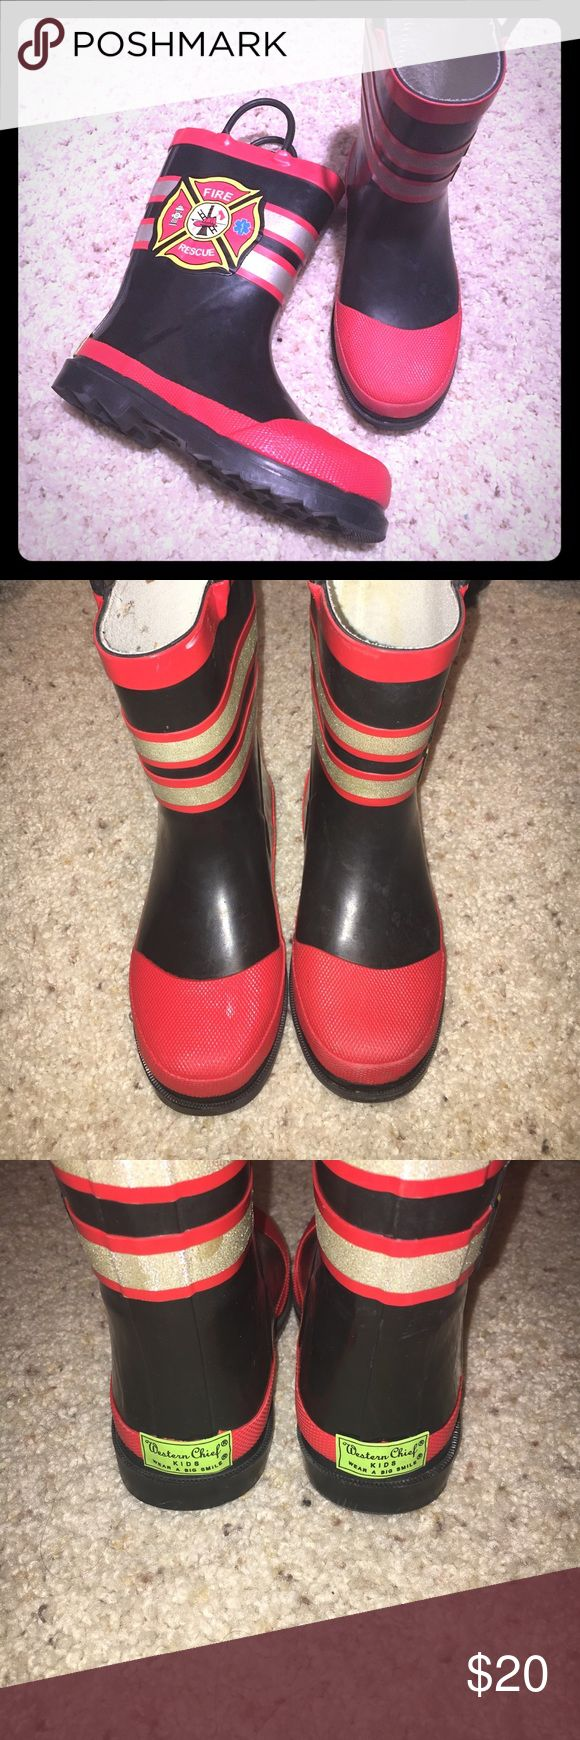 Boy's Western Chief Rain Boots! Boy's Western Chief rain boots! Fire rescue red gold and black. Boys size 11-12 Western Chief Shoes Rain & Snow Boots